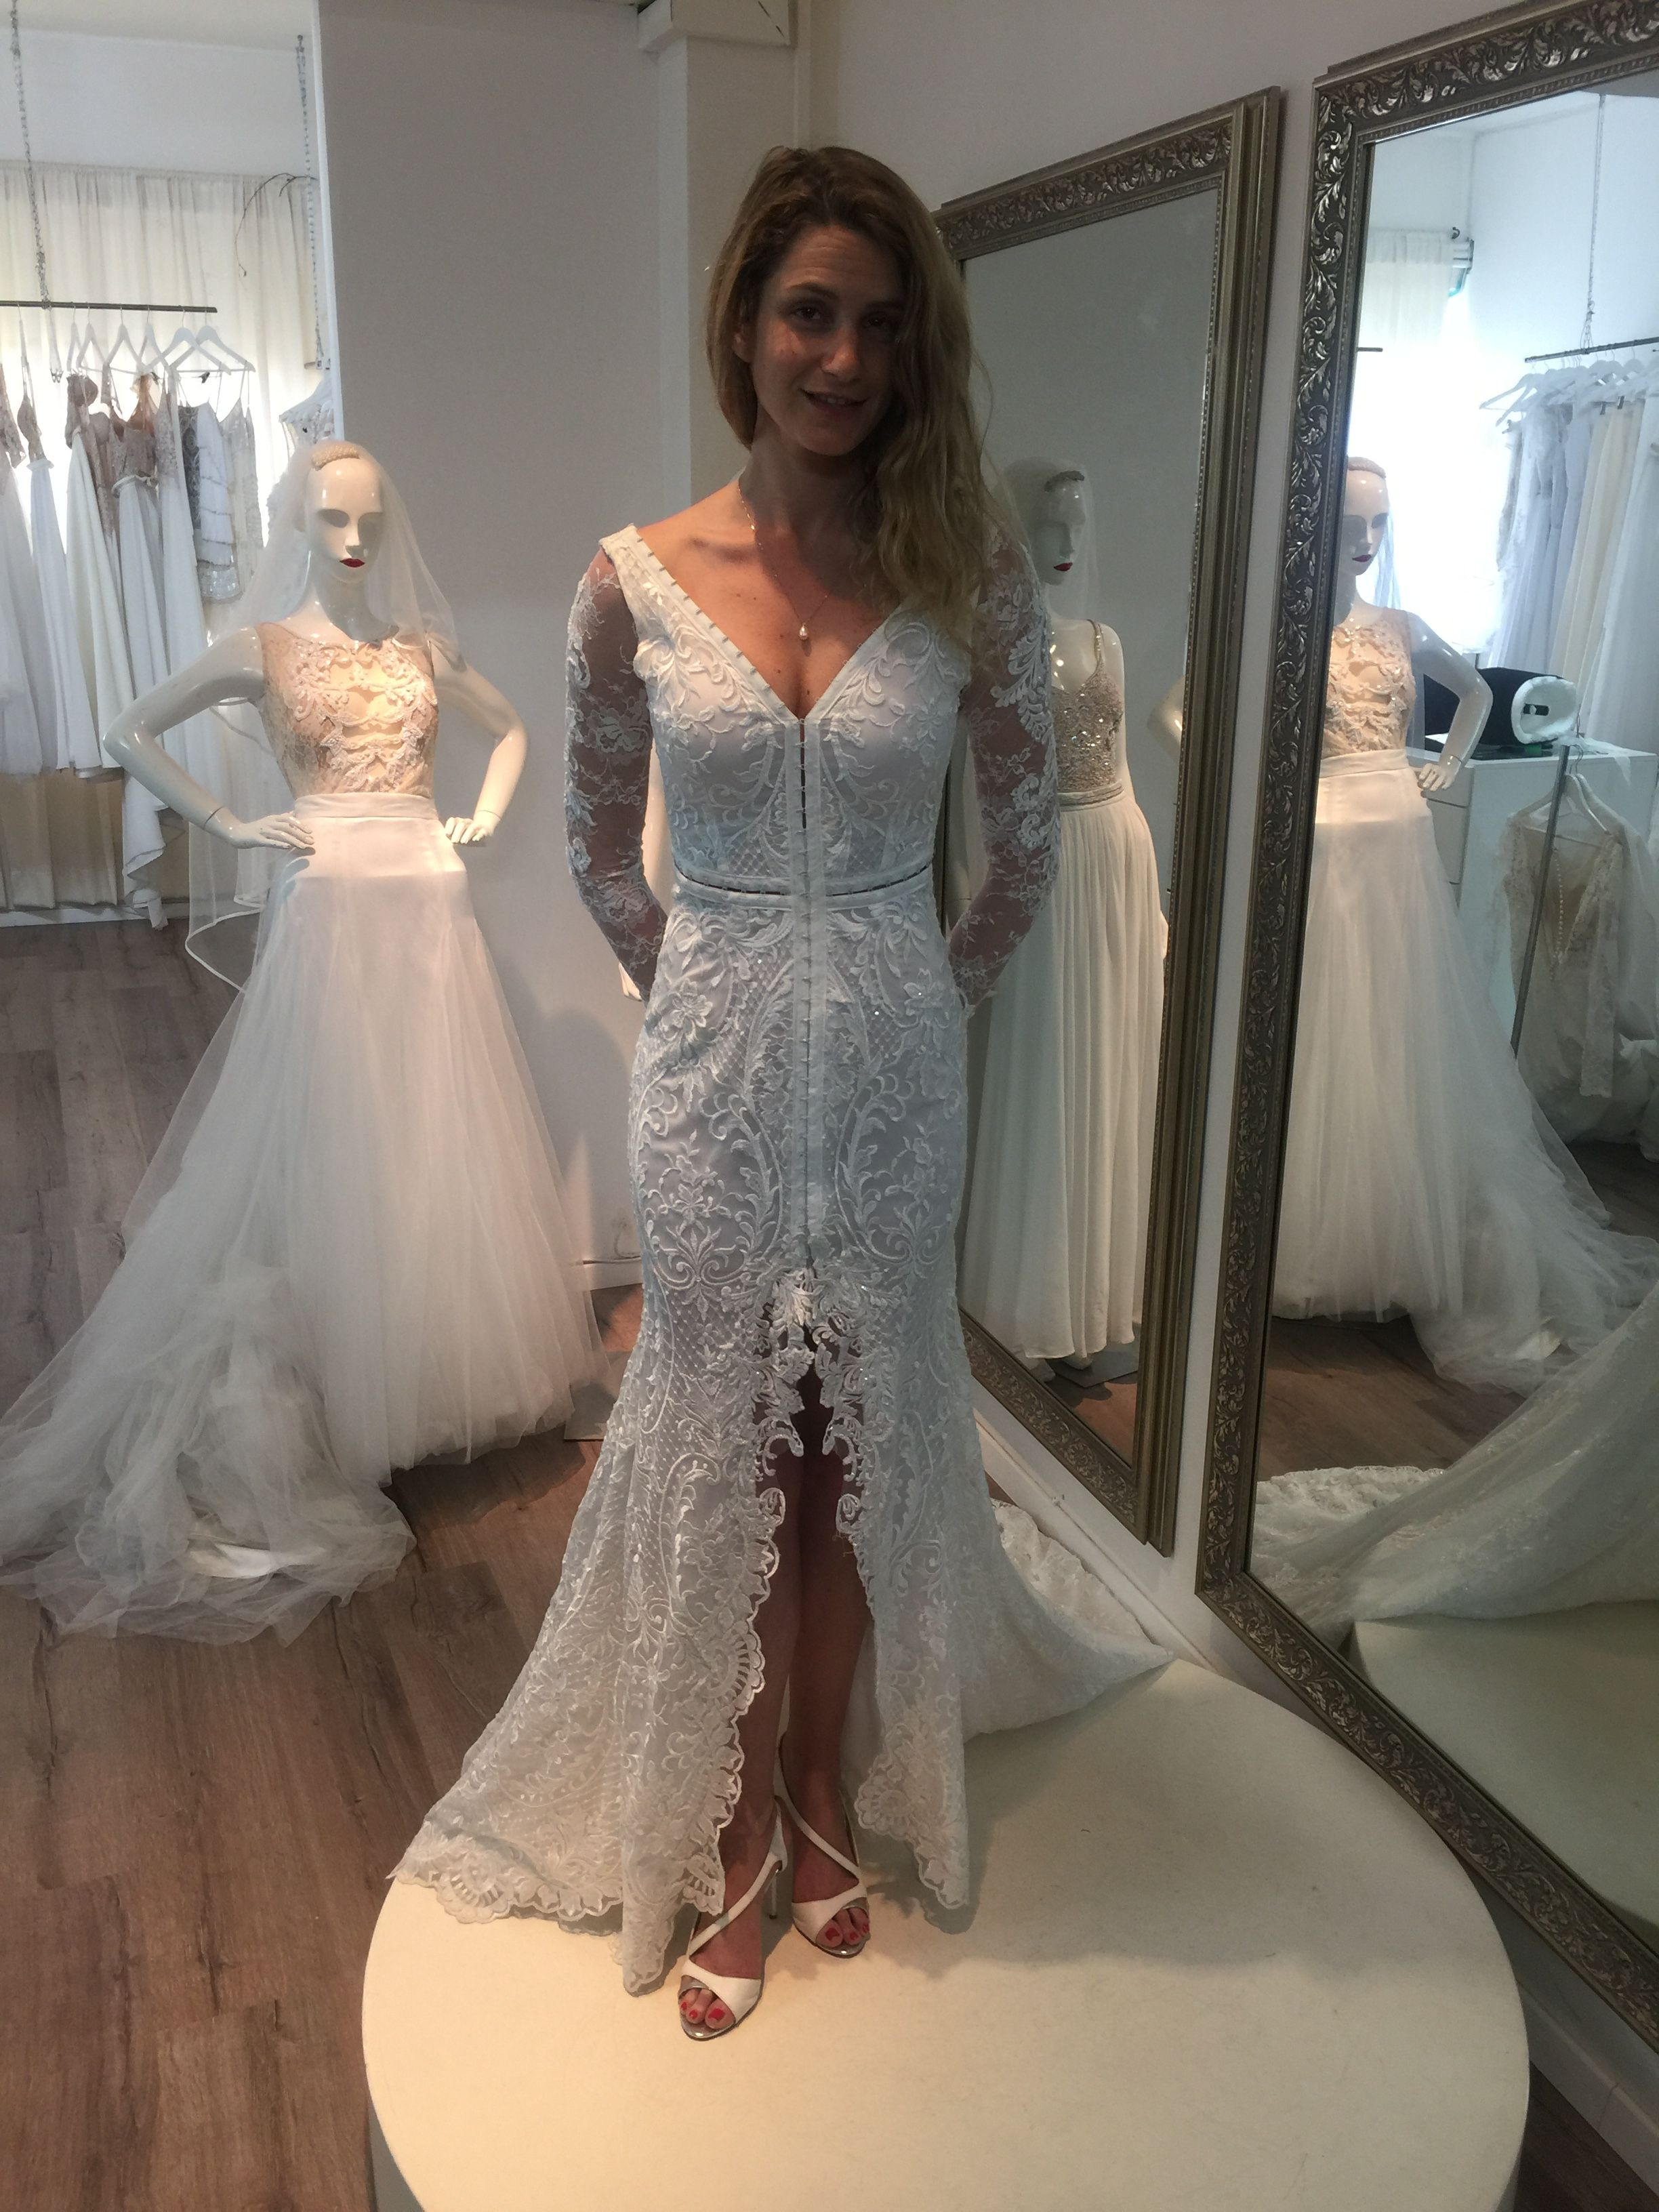 Yanivpersy Bridal Fitting Realbride Wedding Weddings Weddinggown Weddingdress Real Brides Wedding Dresses Wedding Gown Accessories Western Gown Design